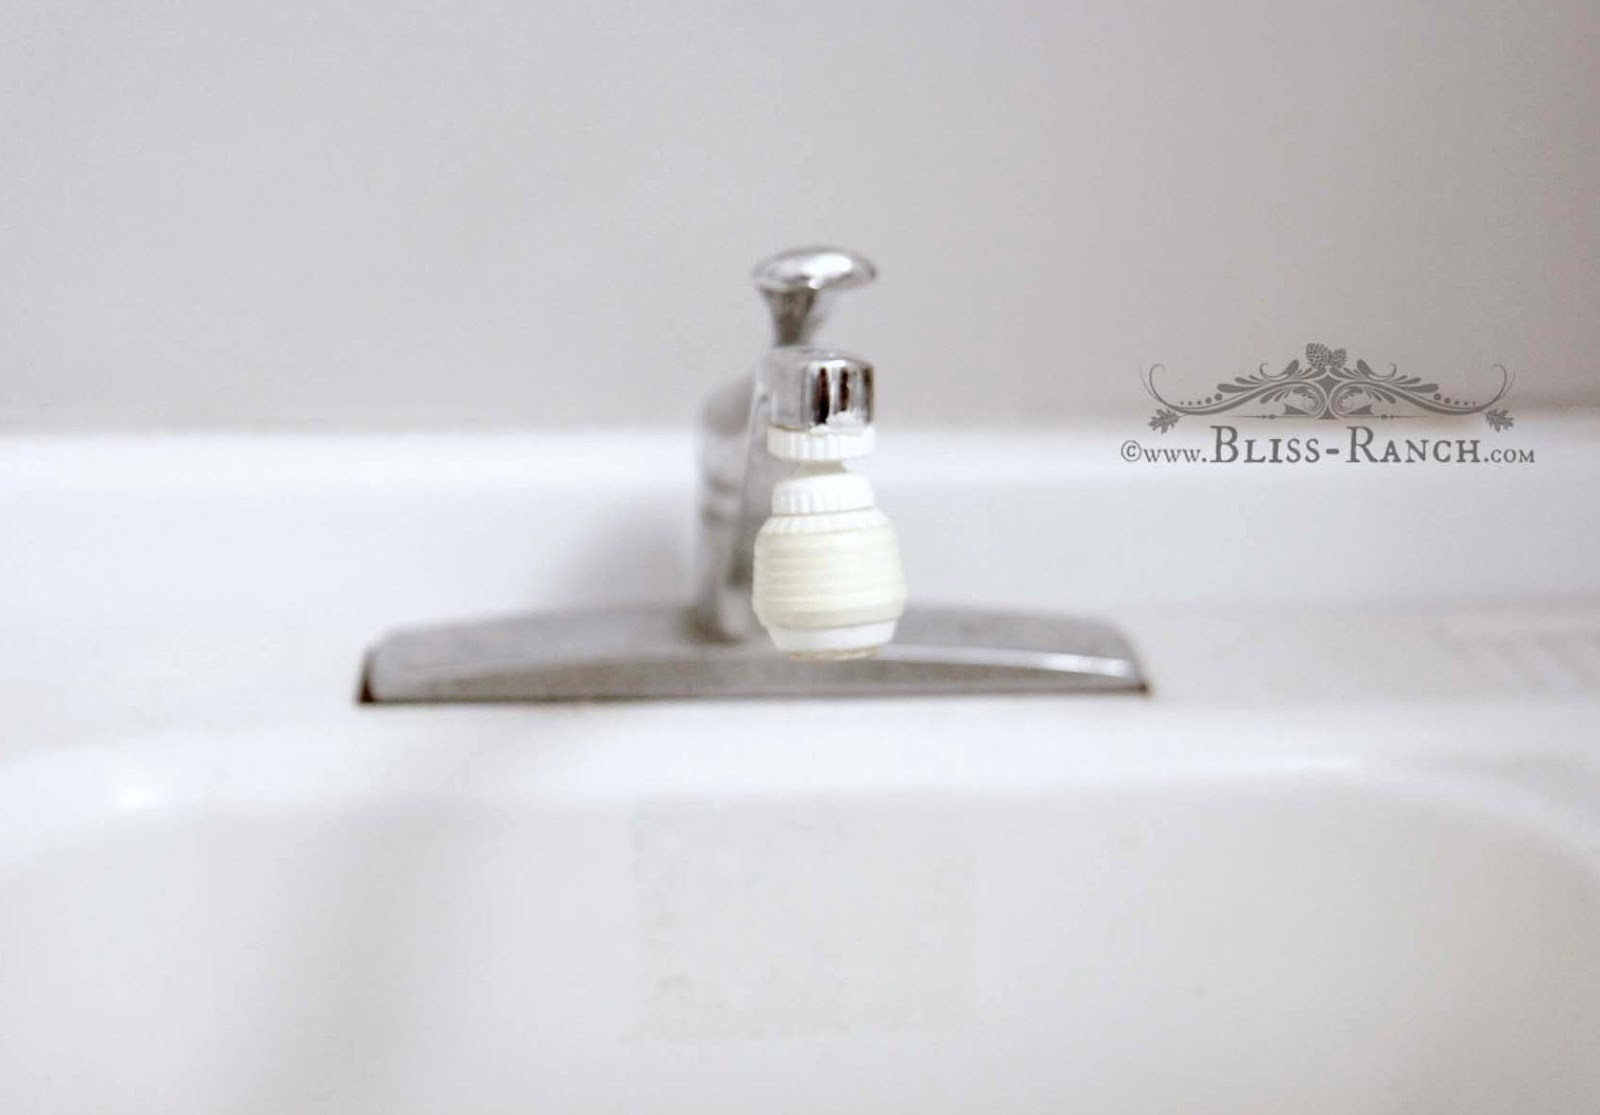 Best ideas about Laundry Room Faucets . Save or Pin Bliss Ranch Pfister Laundry Room Faucet Now.